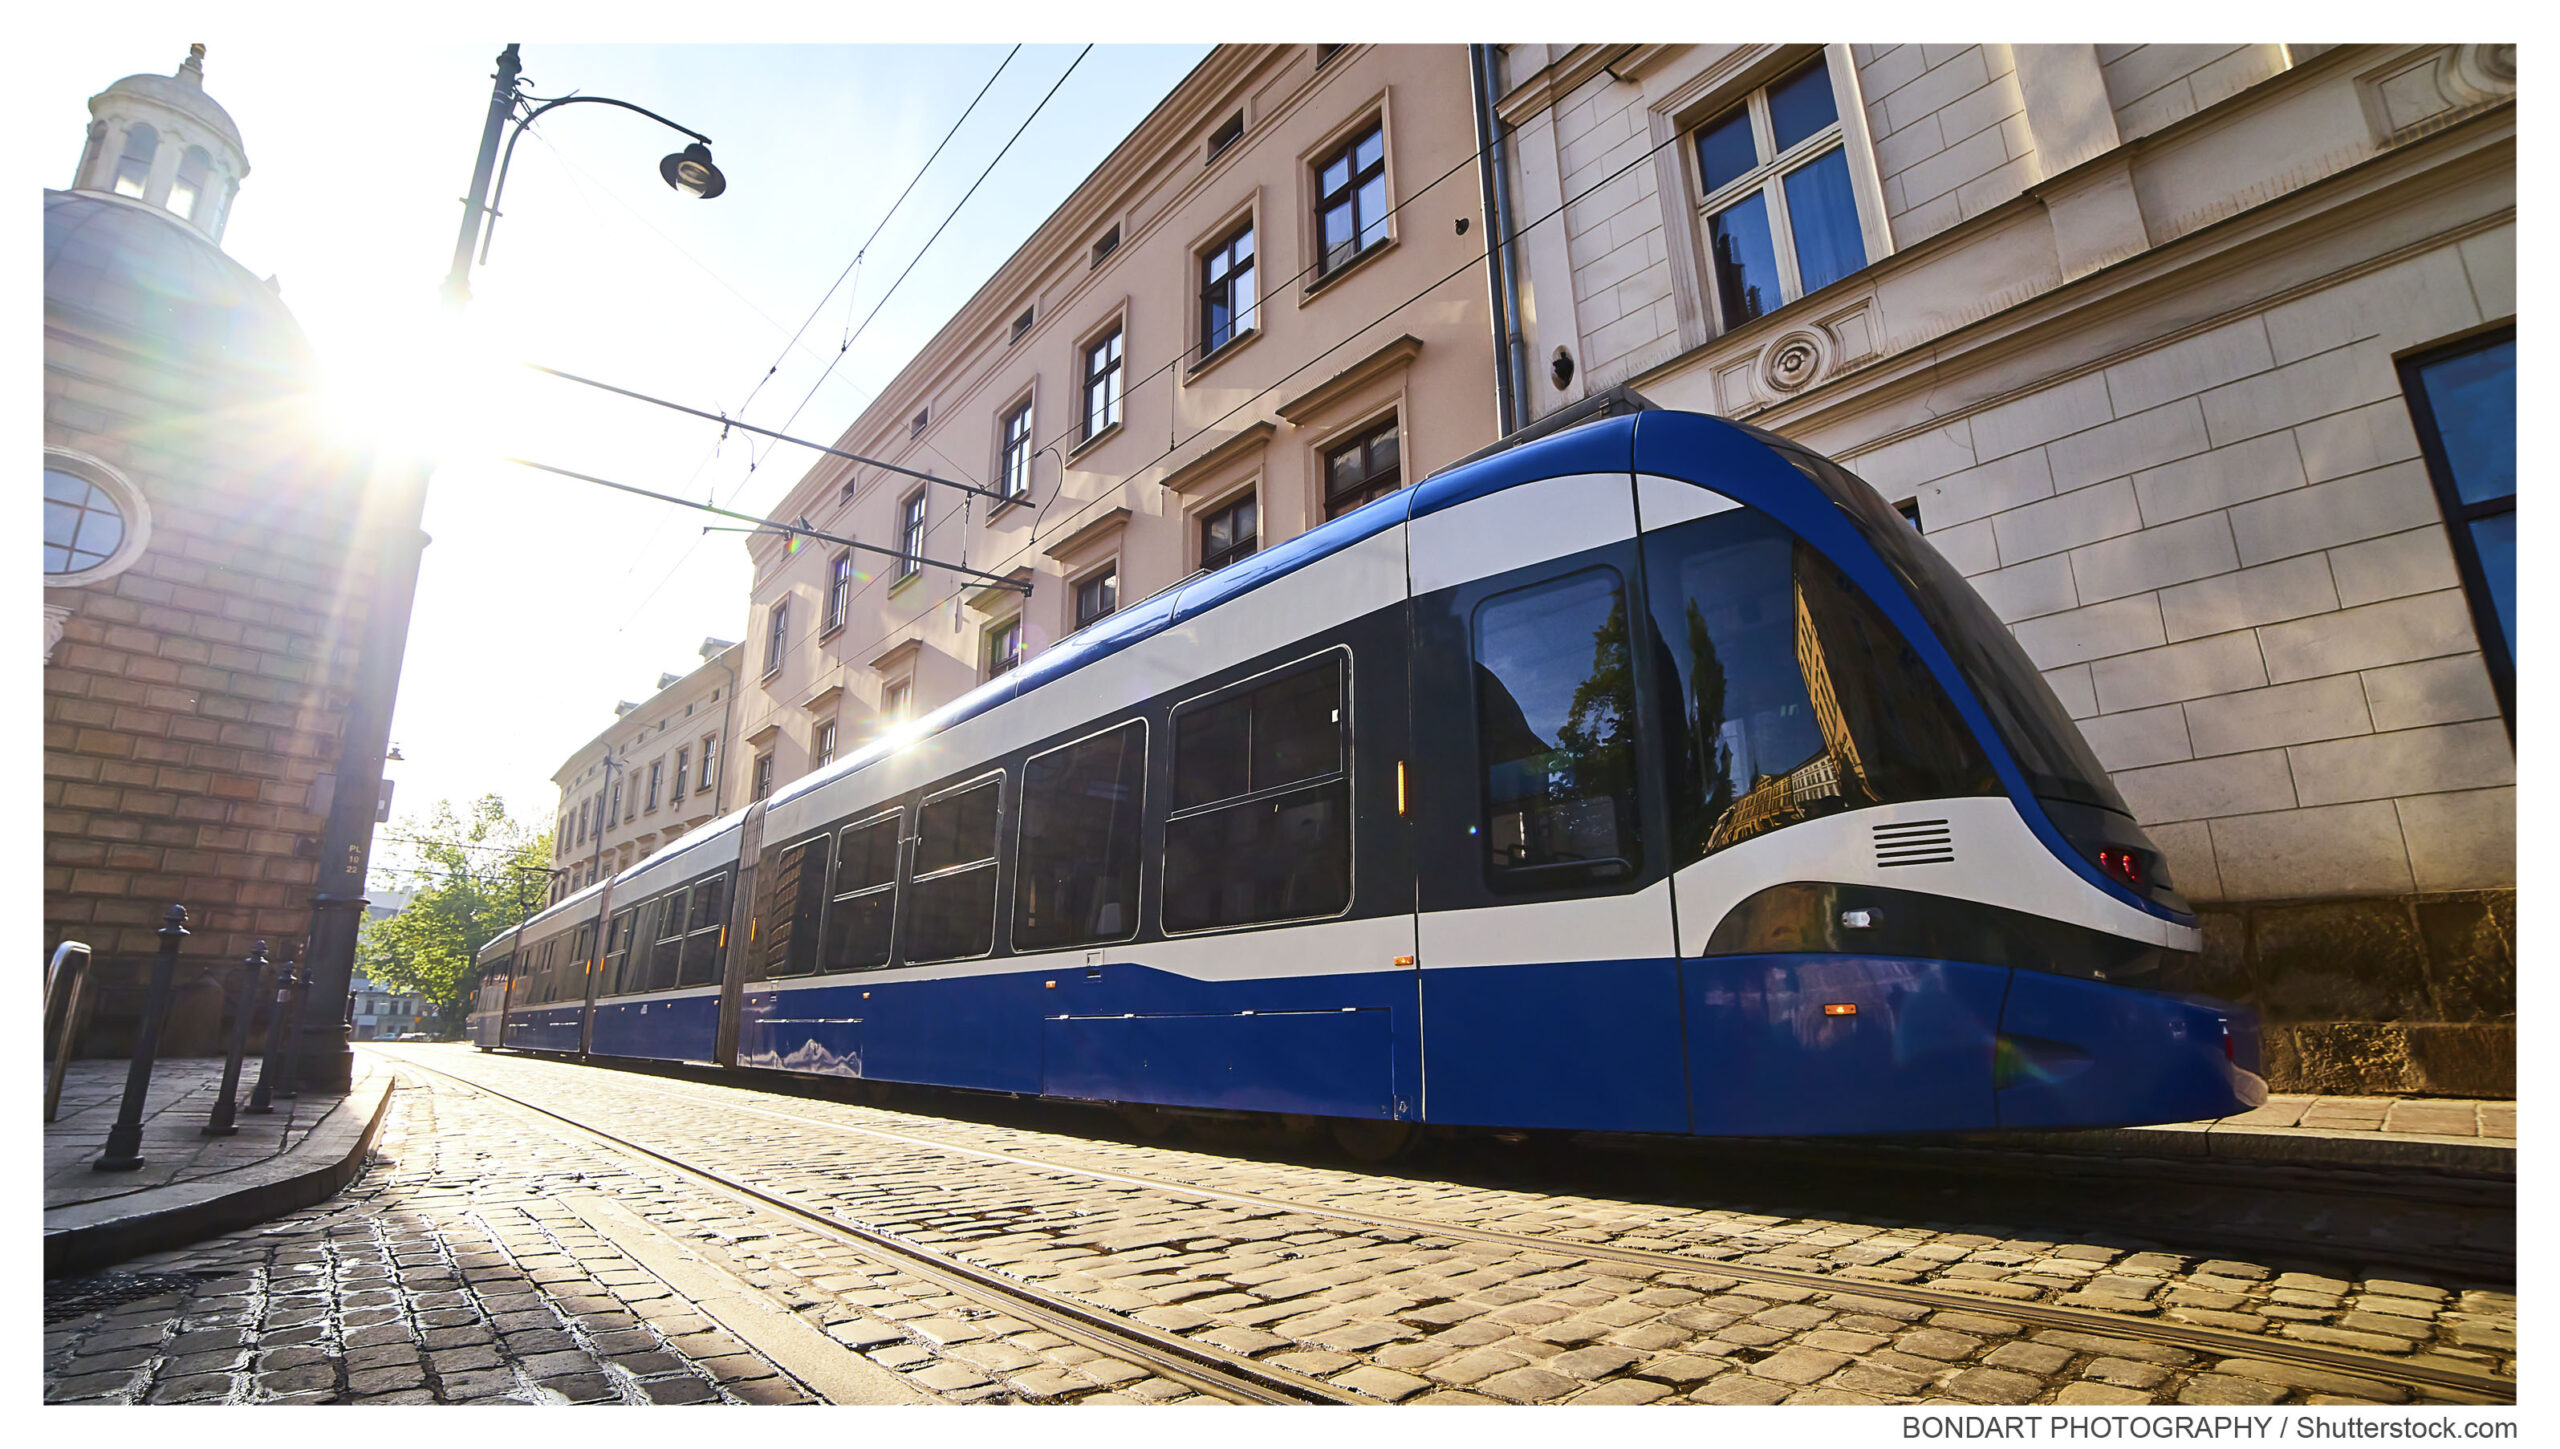 Tram,On,The,Street,Of,Old,Town,In,Krakow,,Poland.